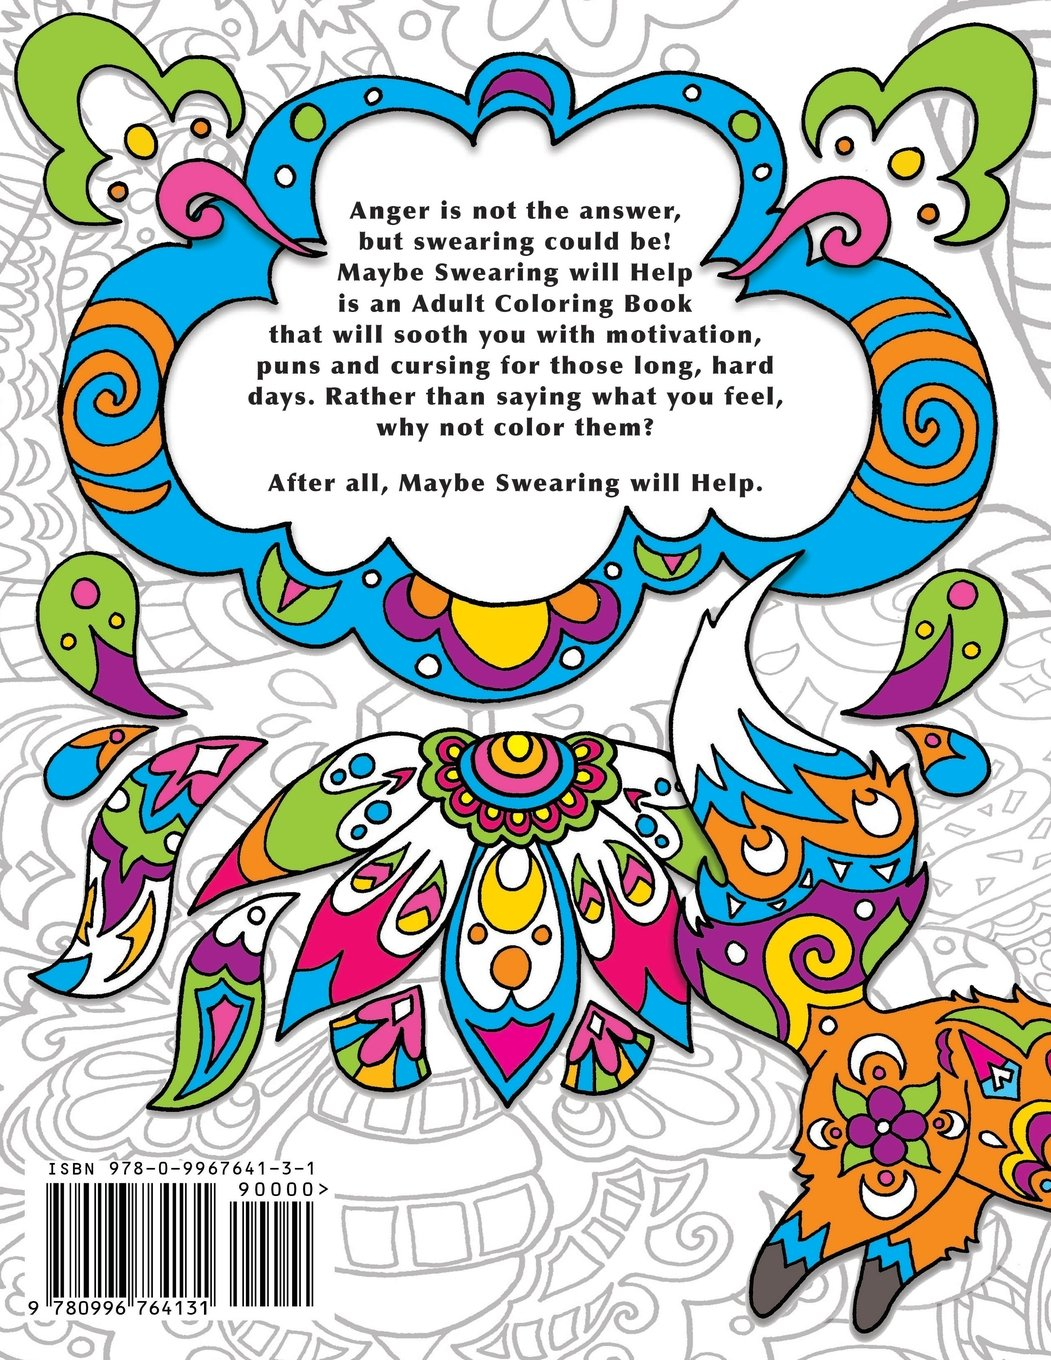 Swear word coloring book volume 1 - Amazon Com Maybe Swearing Will Help Adult Coloring Book 9780996764131 Nyx Spectrum Books